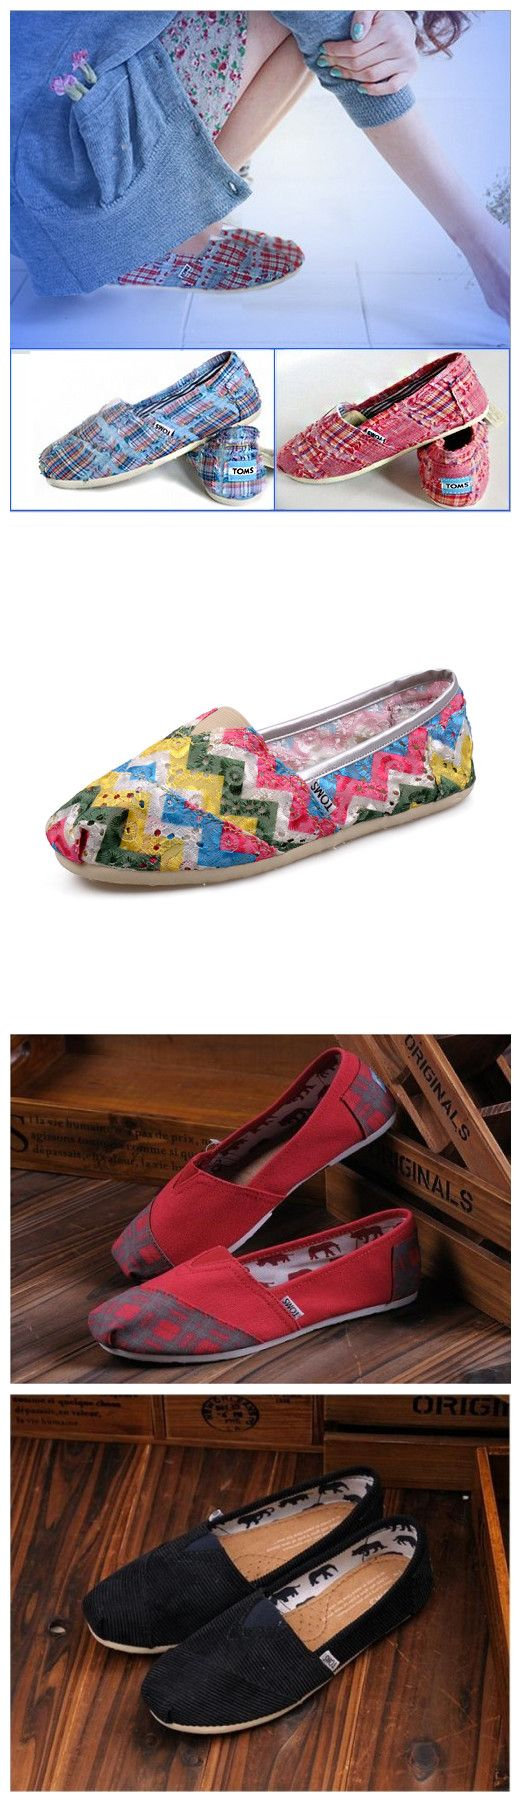 Just to buy the TOMS shoes here, they are both extremely comfortable and extremely stylish.The most important is they are quality guaranteed but cheap,welcome order now!